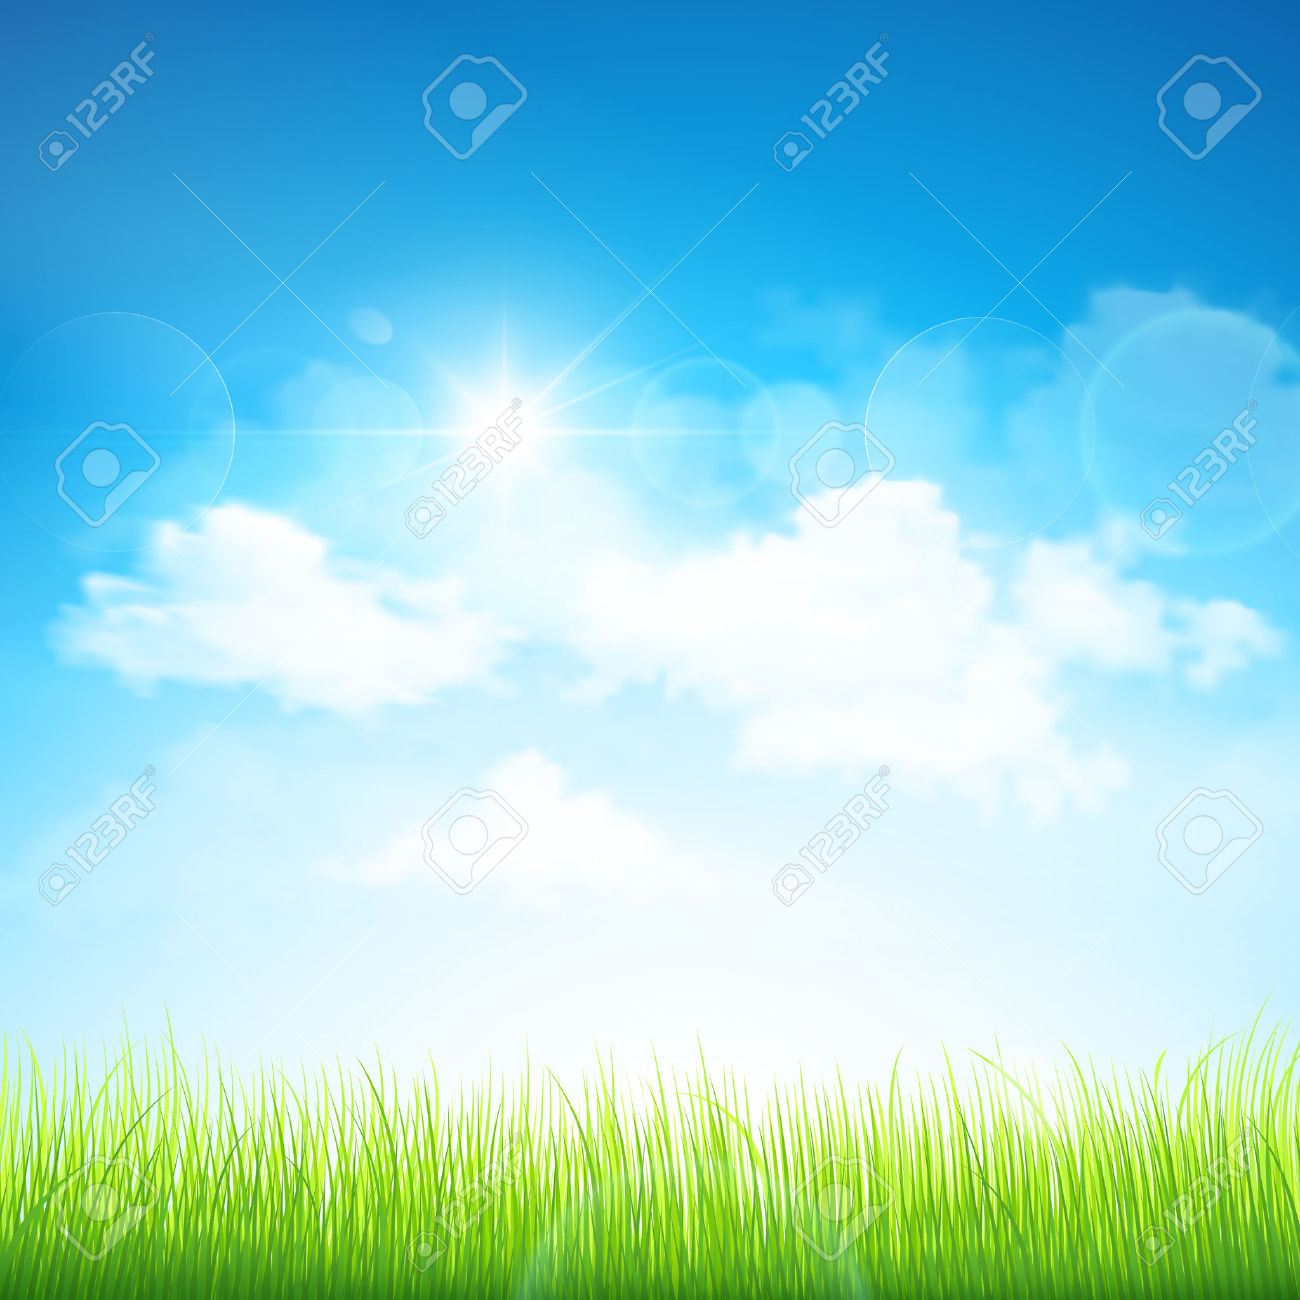 45,037 Grass Field Background Stock Illustrations, Cliparts And.